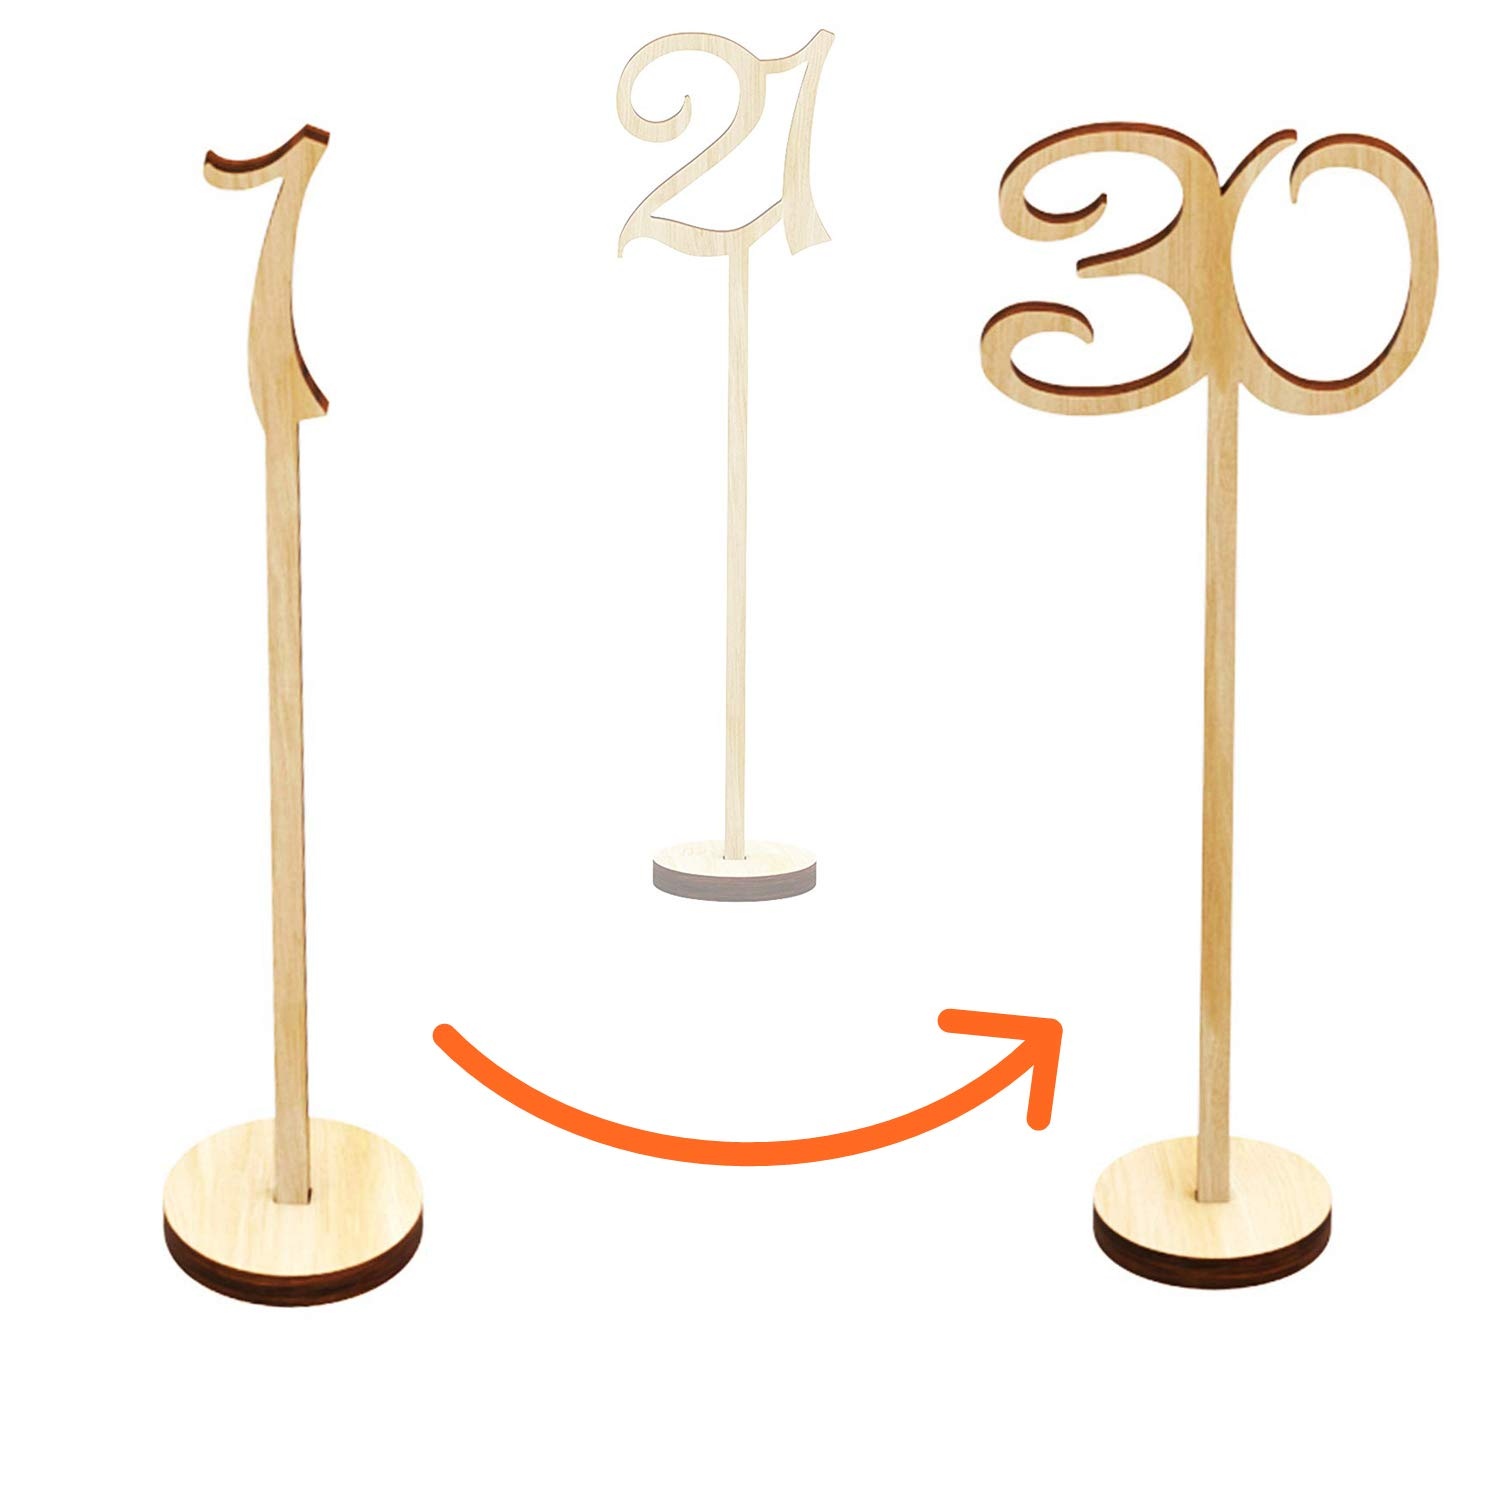 goldblue Wooden Table Numbers 1-30 Wedding Decor Centerpieces Thick Heavy Duty Tall Natural Signs Holder Best for Receptions, Banquets, Cafés, Restaurants, Hotels, Parties by goldblue